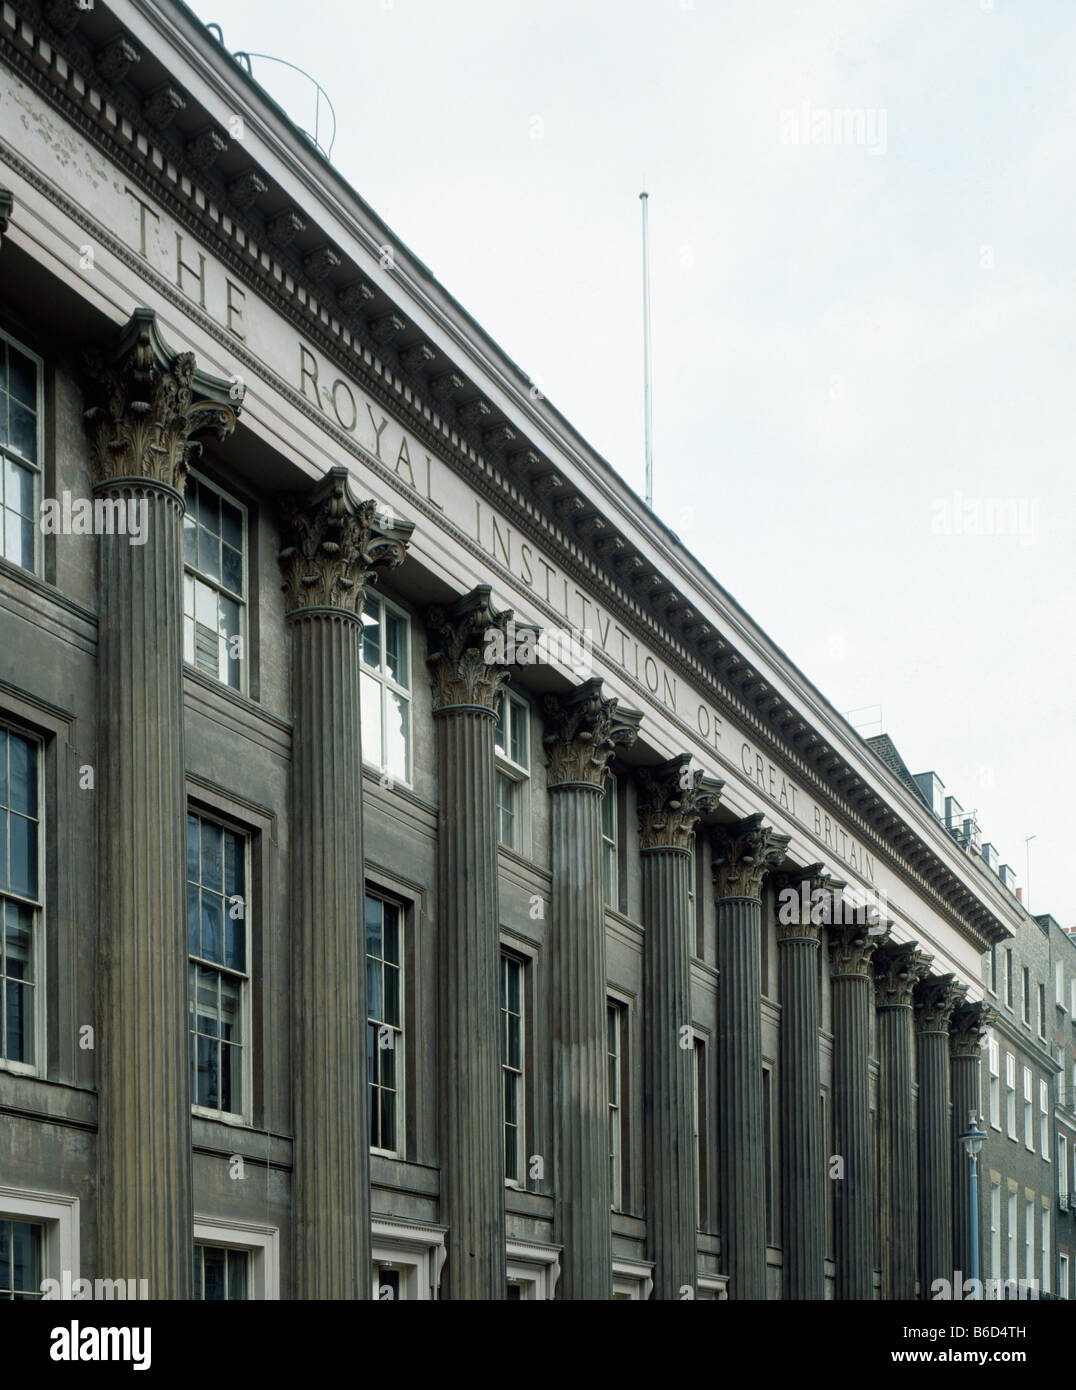 Royal Institution - Stock Image